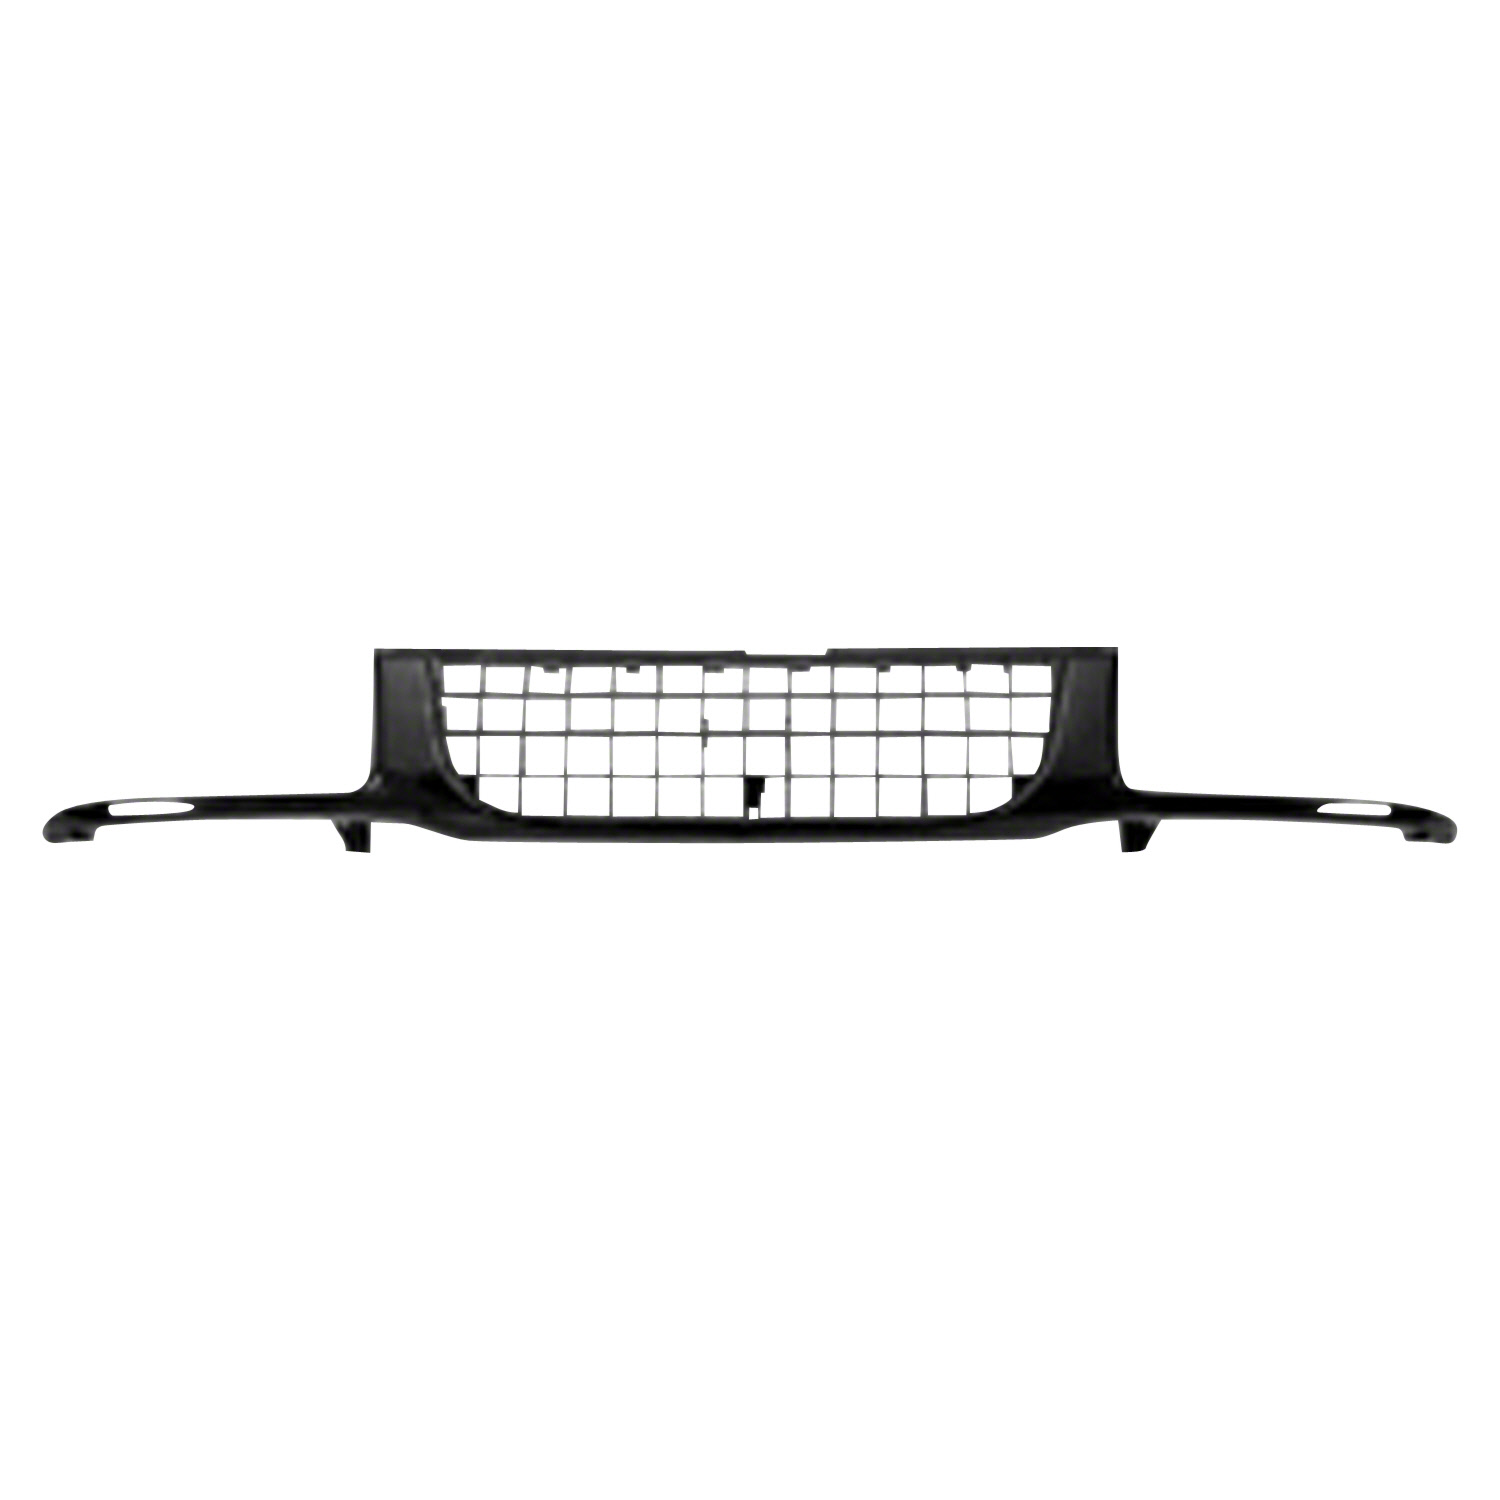 Front Grille Fits Isuzu Rodeo 104